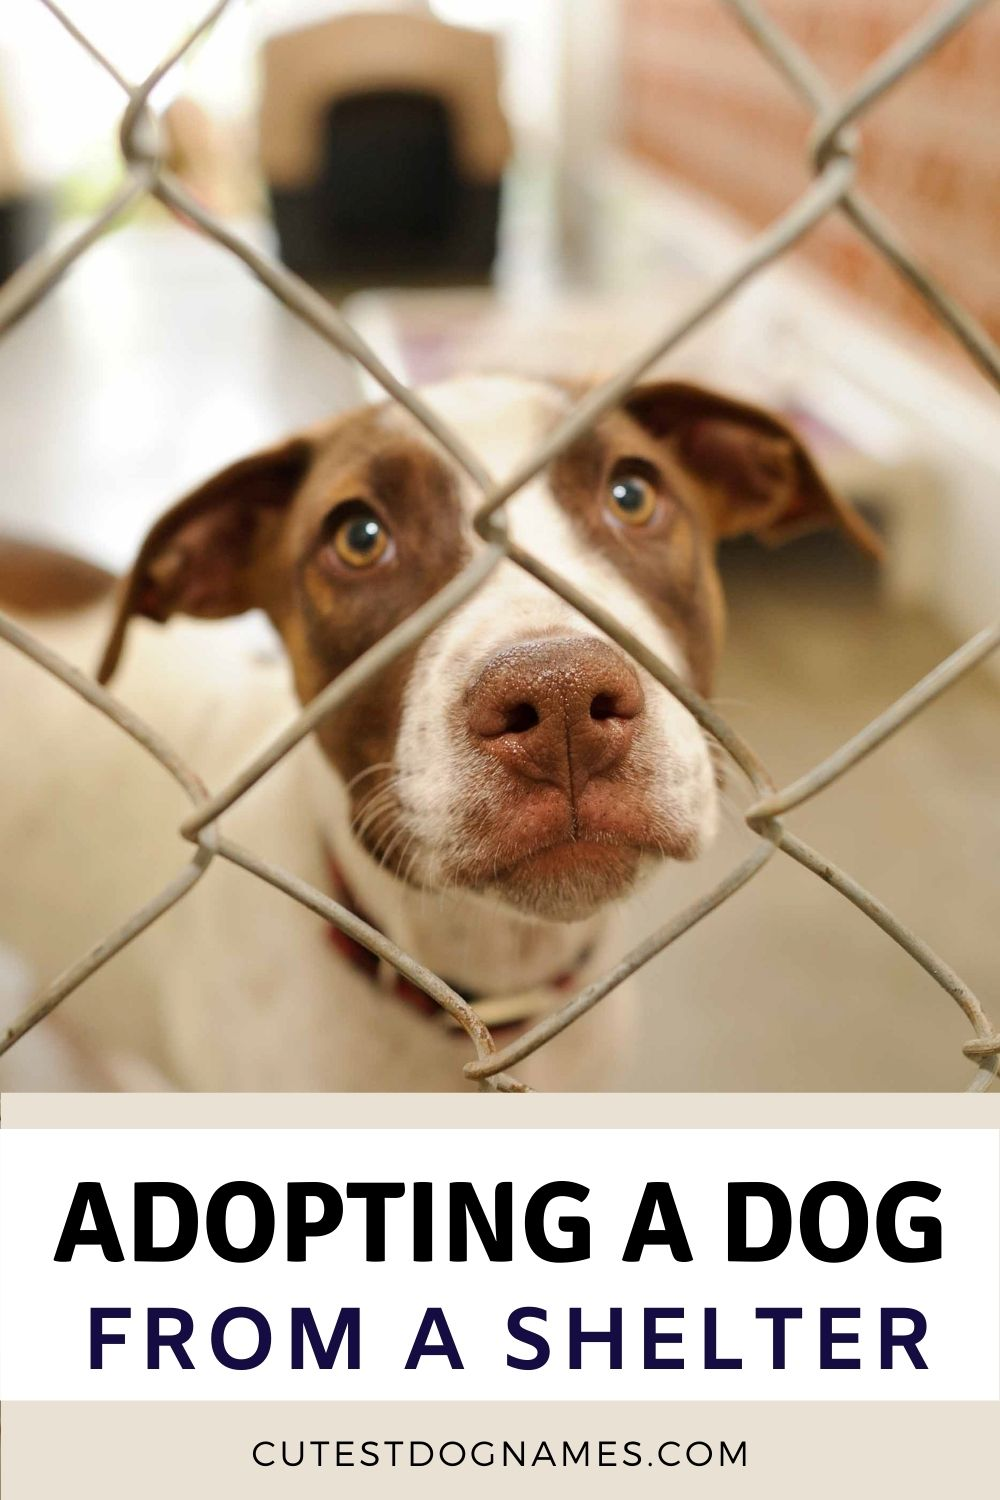 brown and white dog looking through wire fence - adopting a dog from a shelter